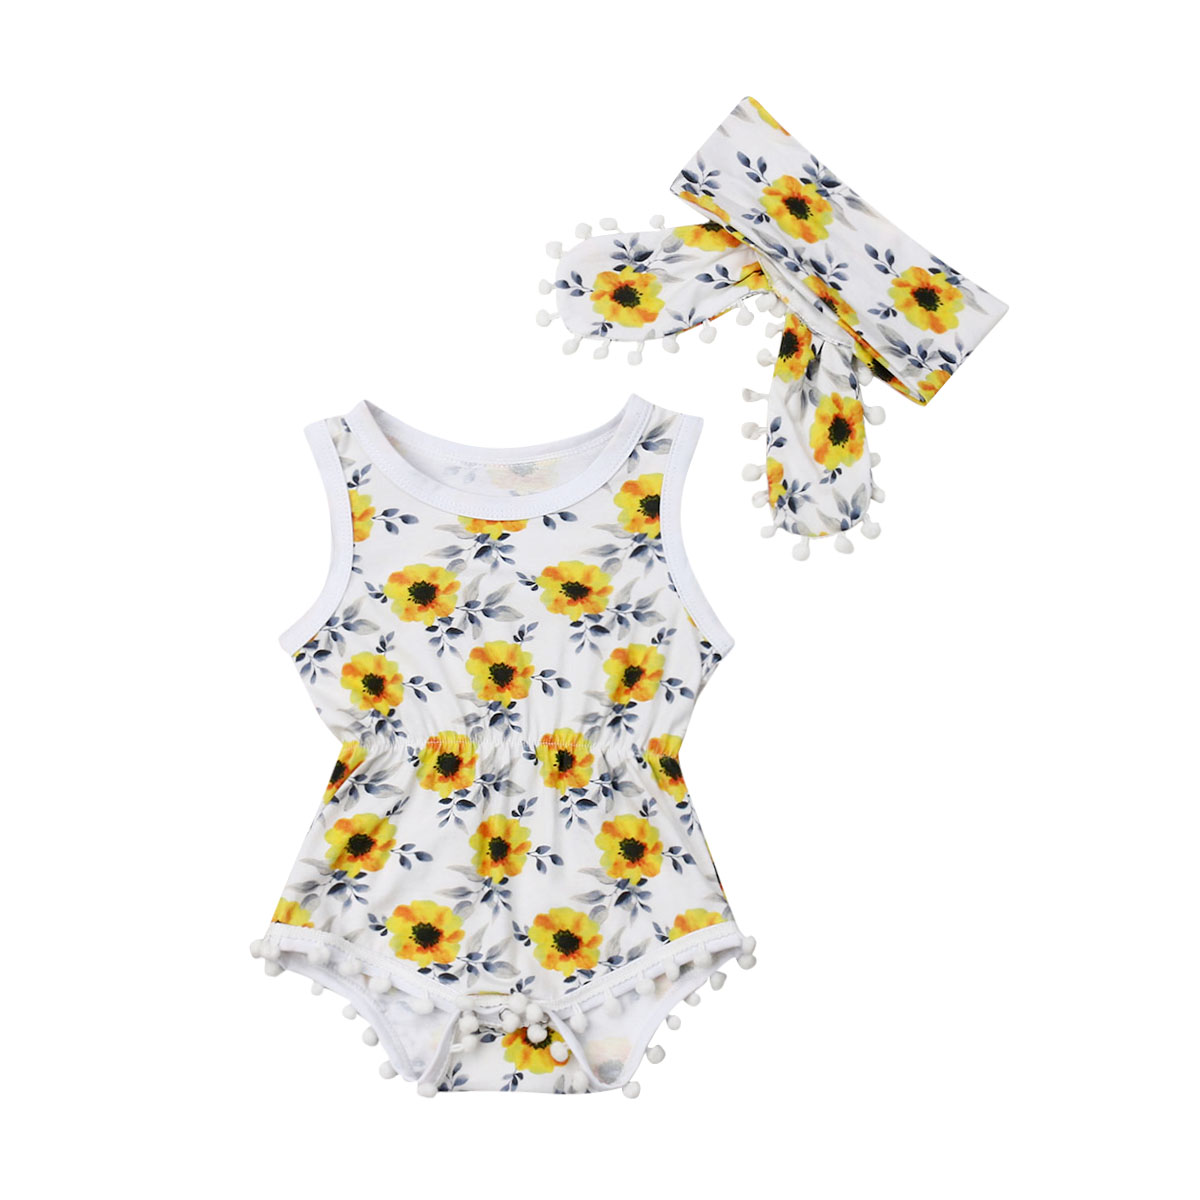 3-24M Fashion Newborn Infant Baby Girl Floral Sleeveless Tassel Bodysuit Jumpsuit One Piece Headband Outfit Summer Clothes